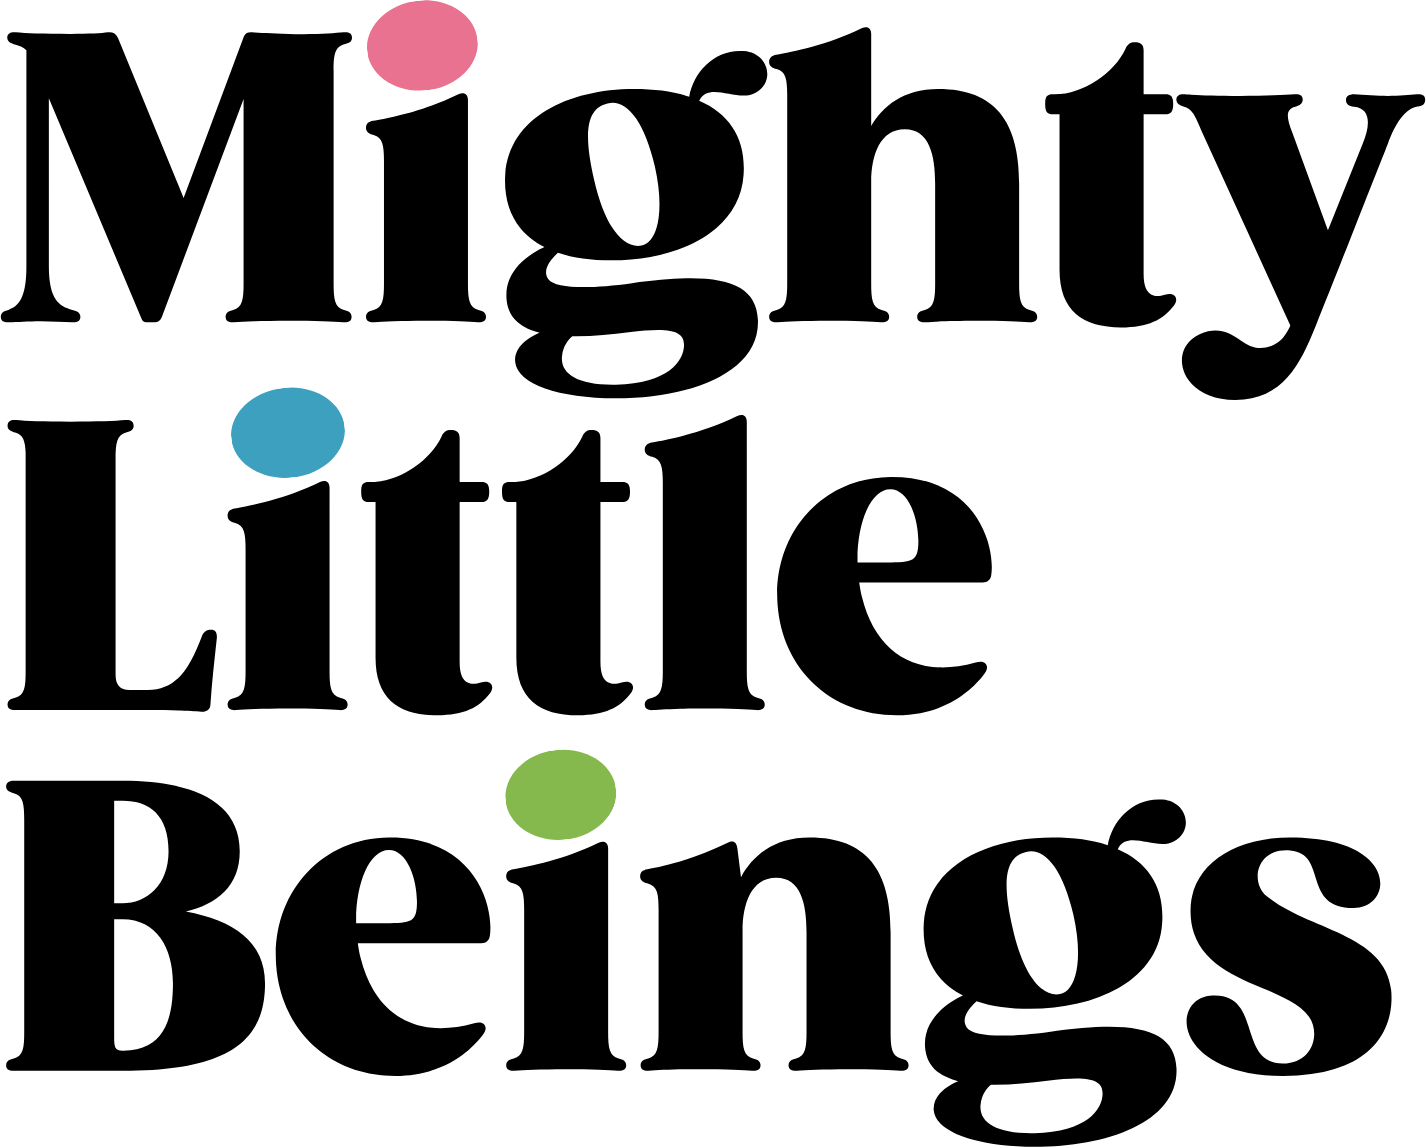 mighty little beings